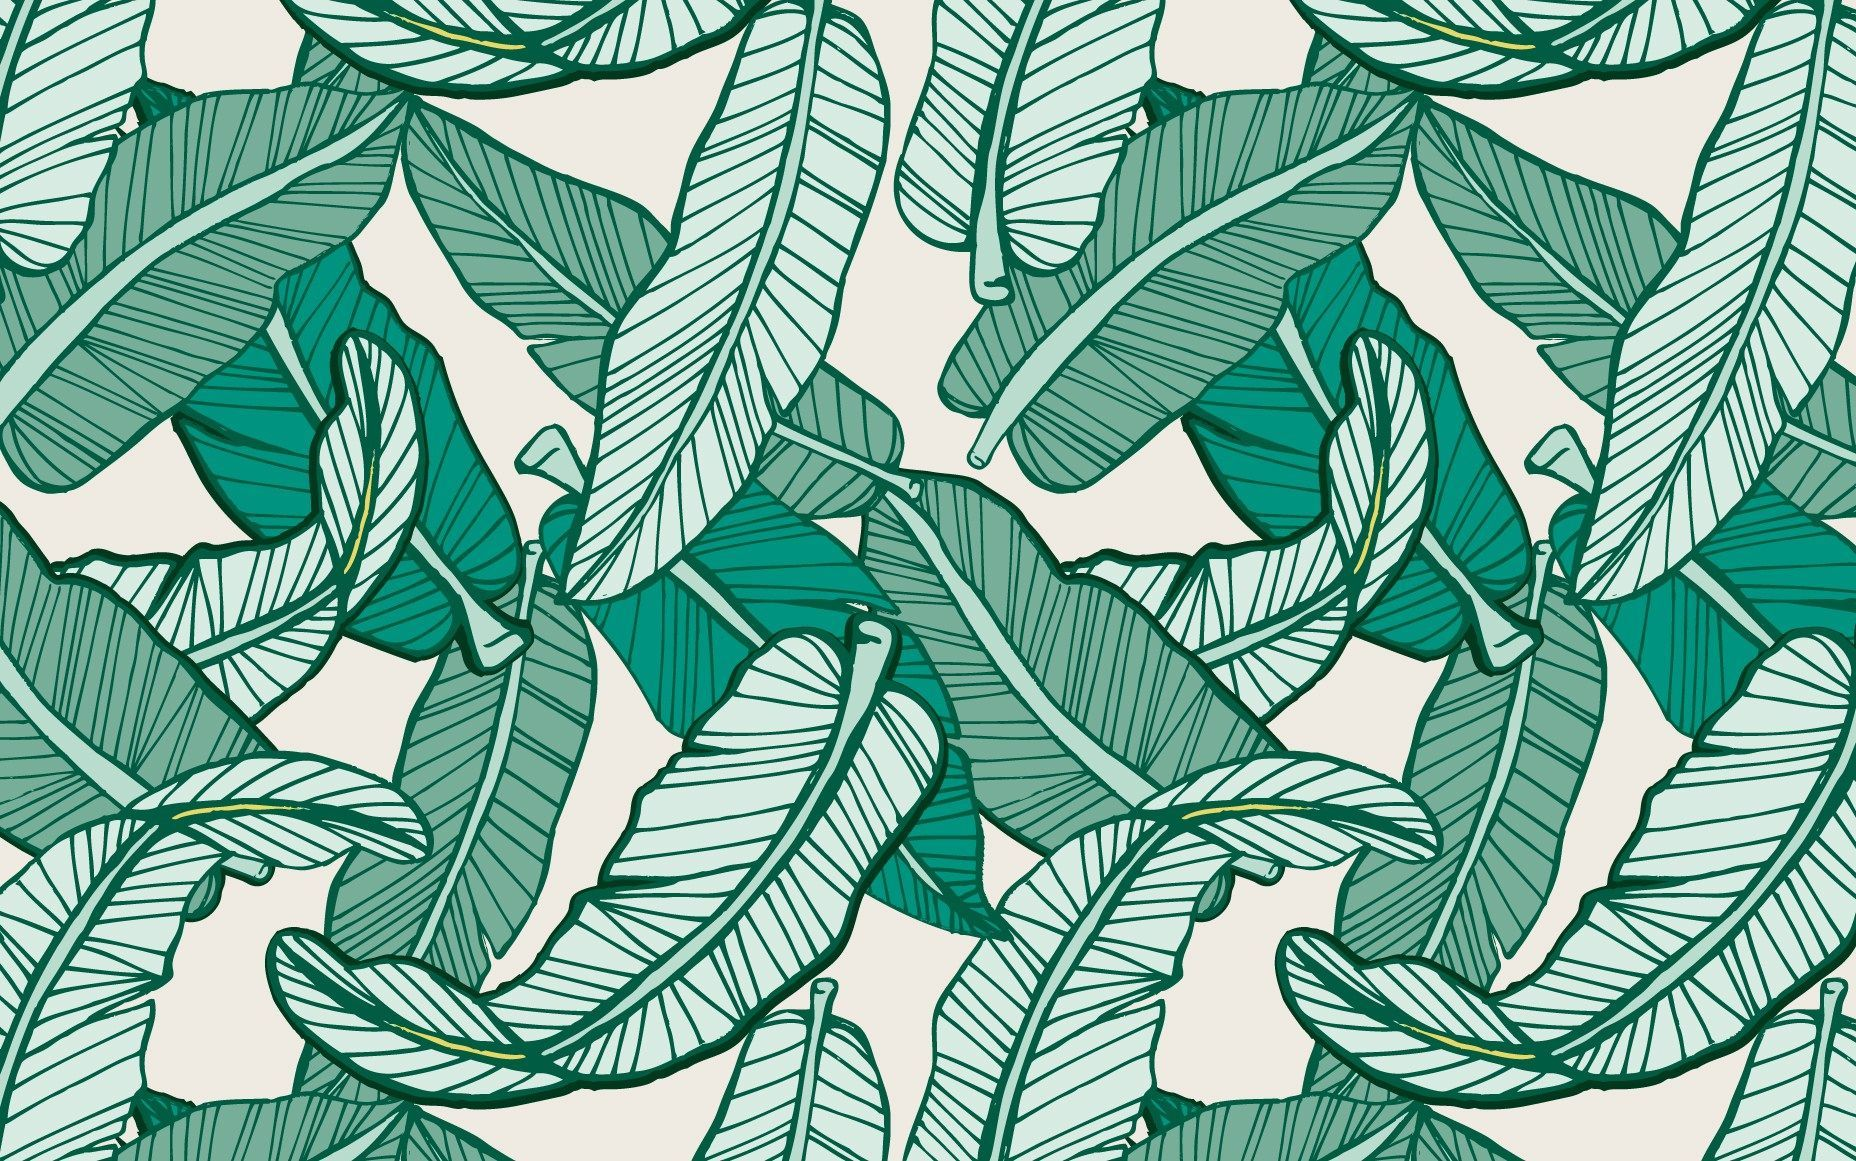 Tropical Leaf Desktop Wallpapers Top Free Tropical Leaf Desktop Backgrounds Wallpaperaccess When you boot your computer, there is an initial screen that comes up, in. tropical leaf desktop wallpapers top